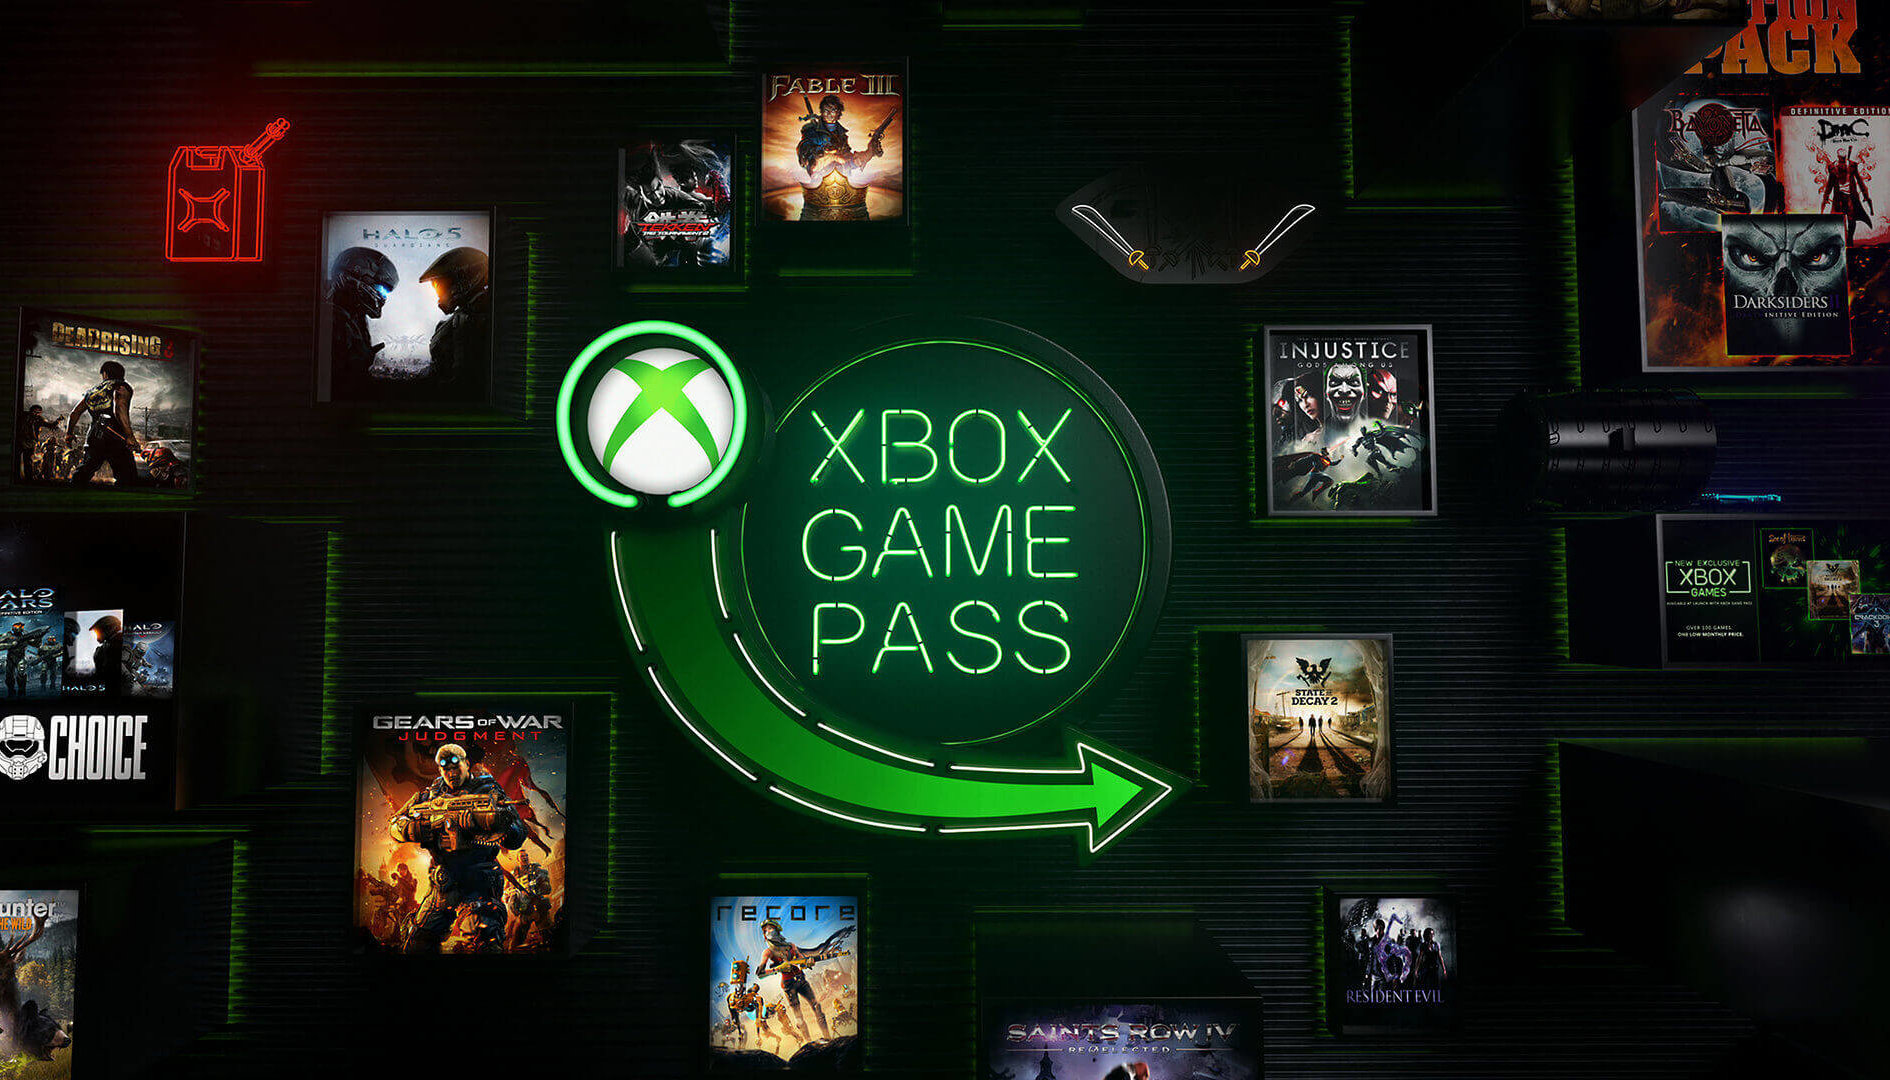 Xbox Game Pass, per Phil Spencer il servizio è economicamente sostenibile